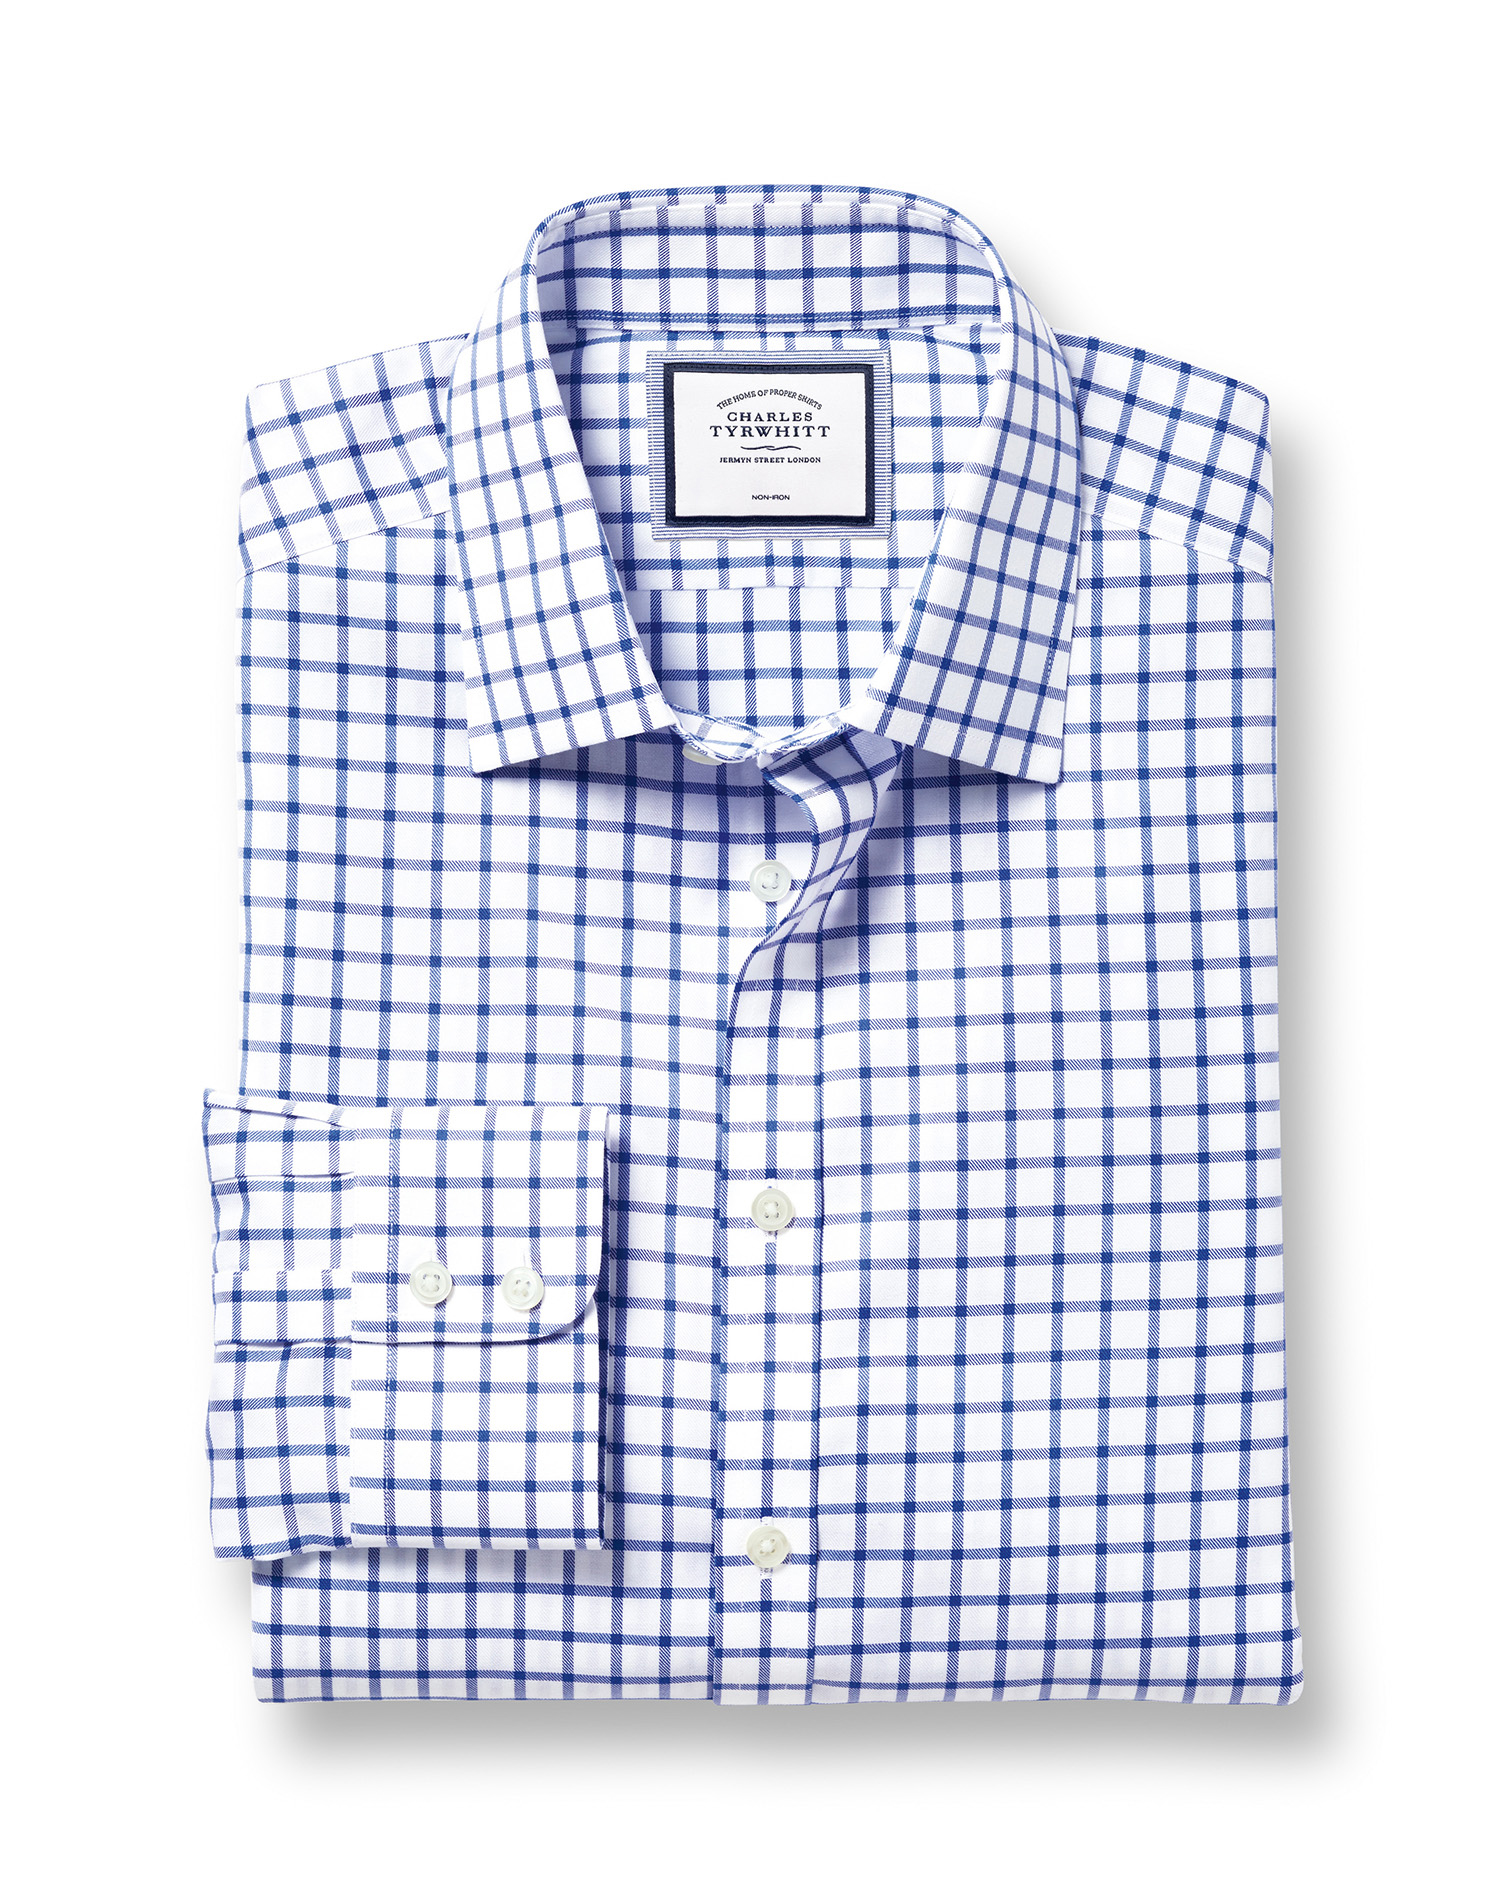 Extra Slim Fit Non-Iron Twill Grid Check Royal Blue Cotton Formal Shirt Single Cuff Size 16/33 by Ch